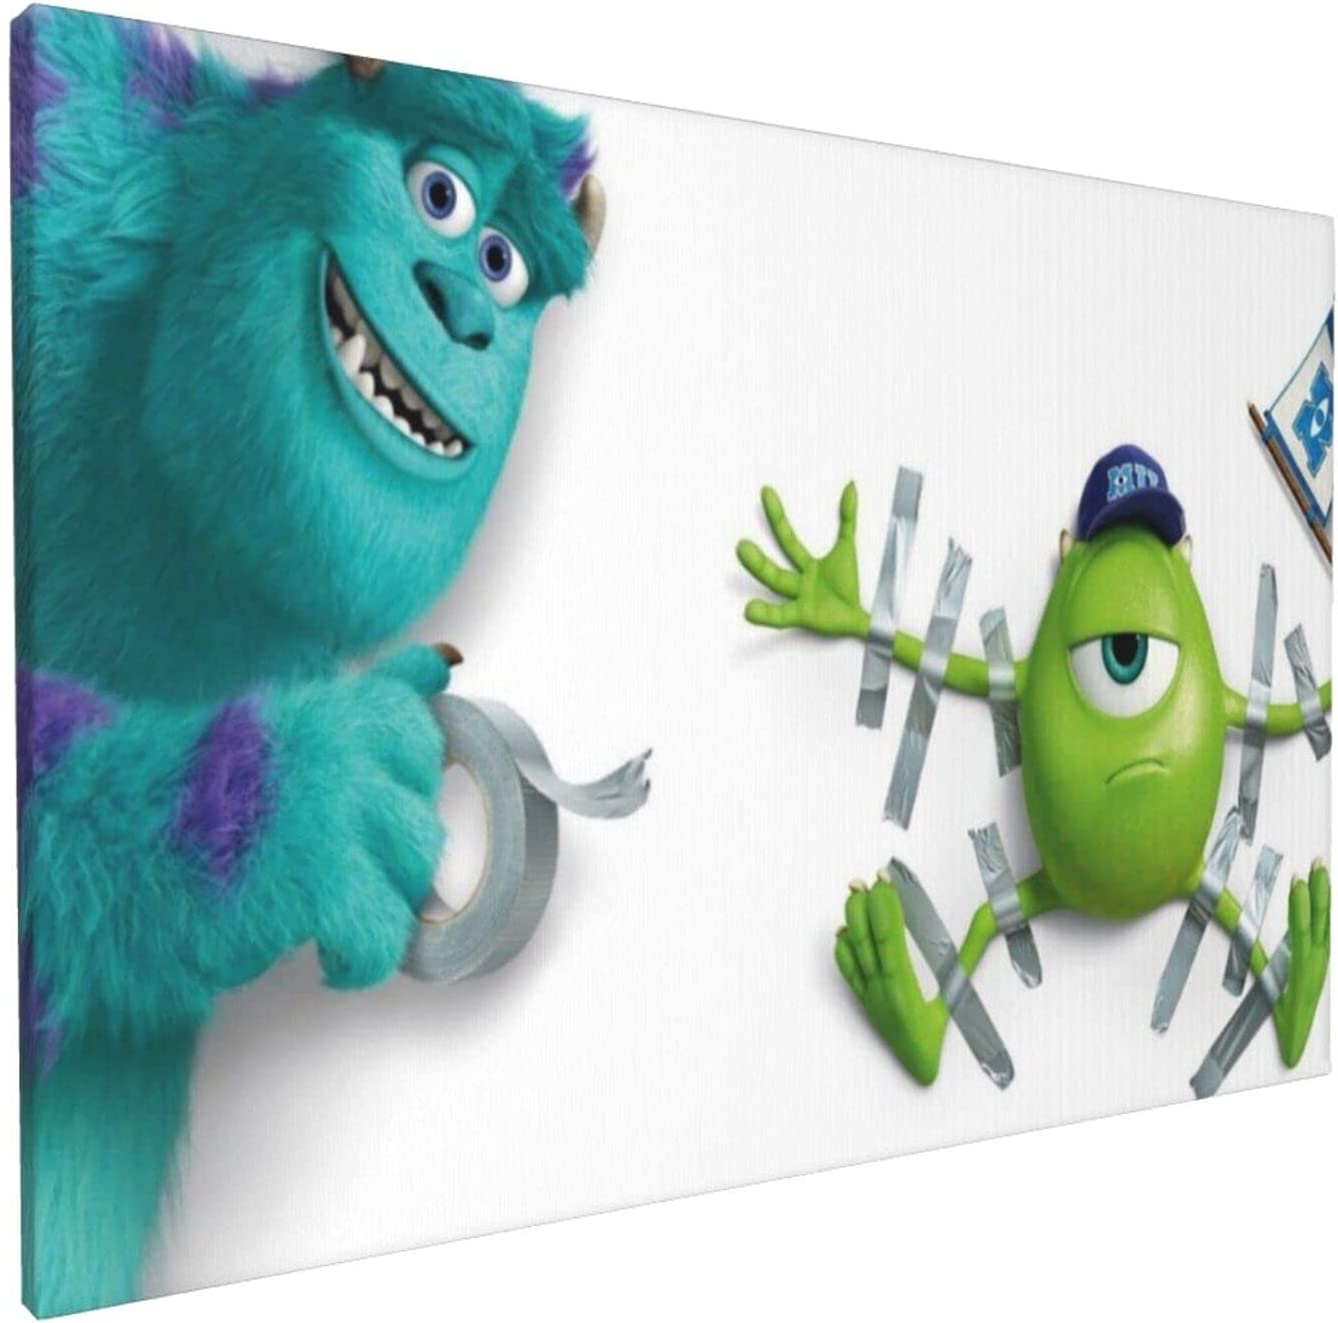 GLBlife Monsters Inc Paintings 3D Printed Posters Canvas Wall Art Bedroom for Office Decor Pictures Painting 12x18in